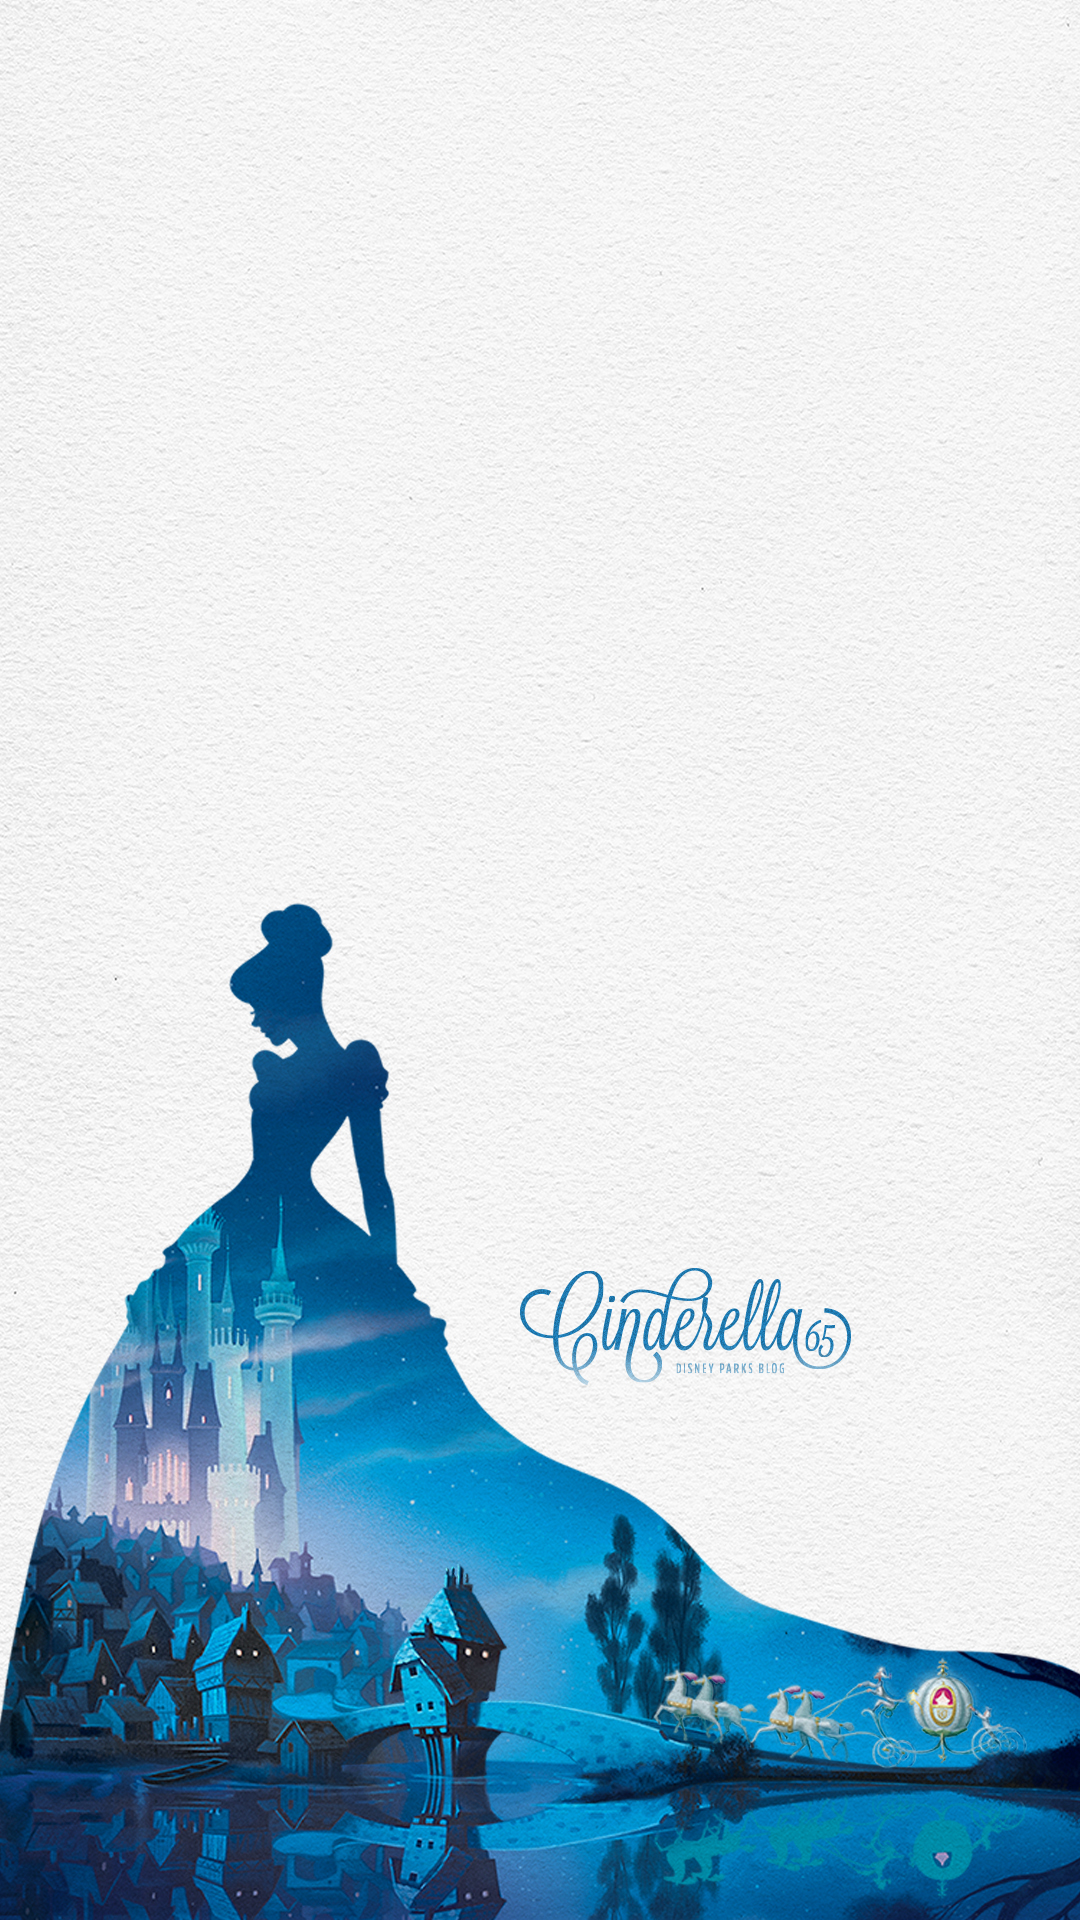 Iphone android wallpapers wallpaper types disney parks - Gingerbread iphone wallpaper ...